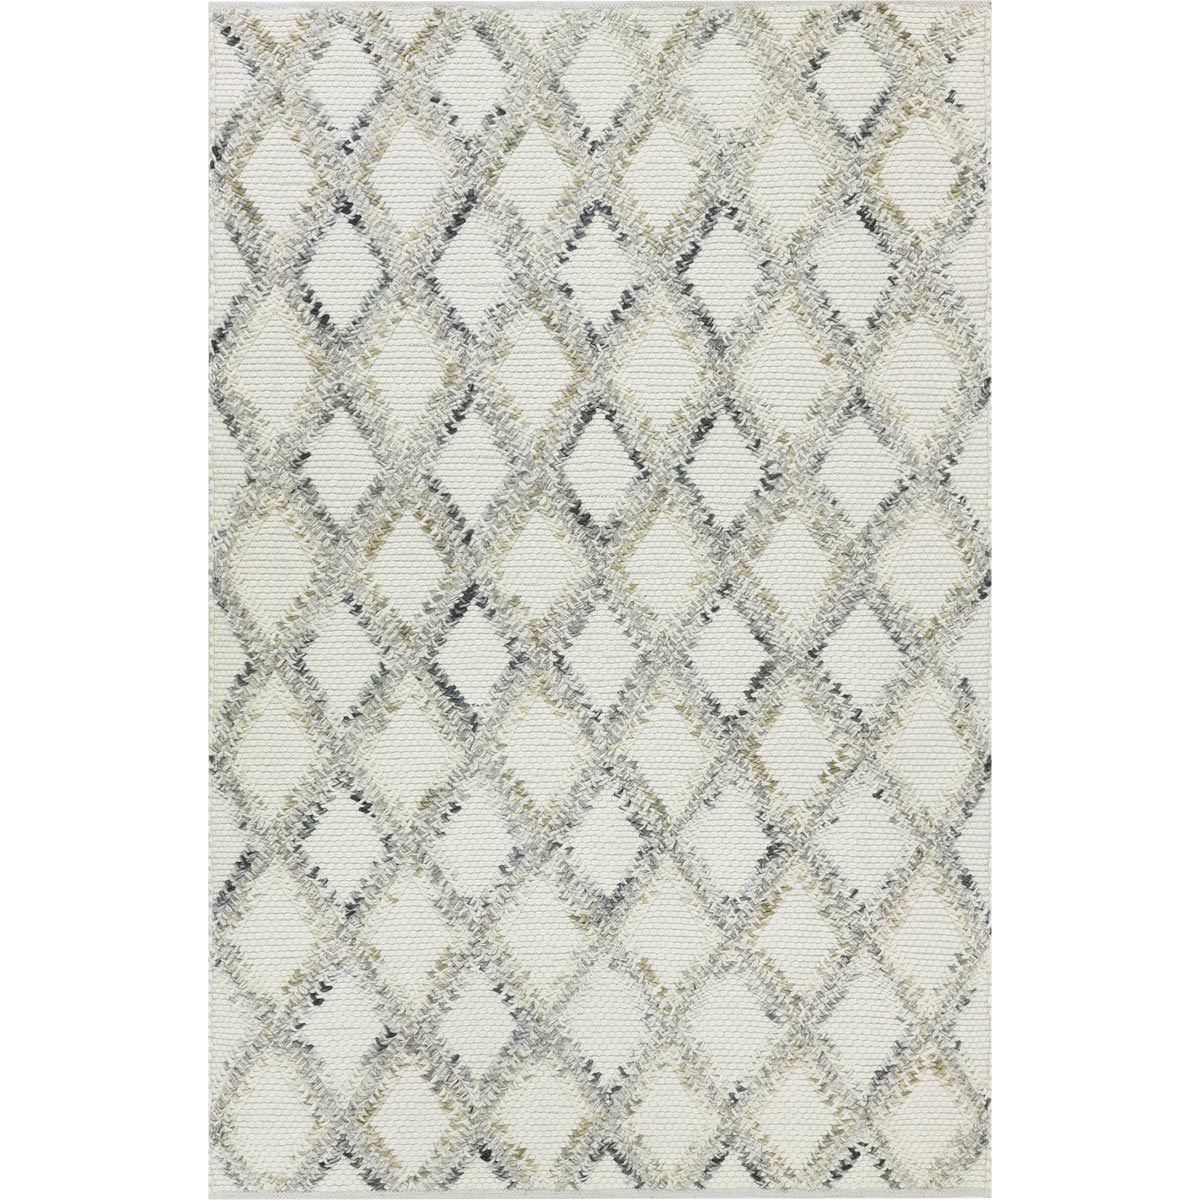 Moroccan Rope Rug 01 White 1